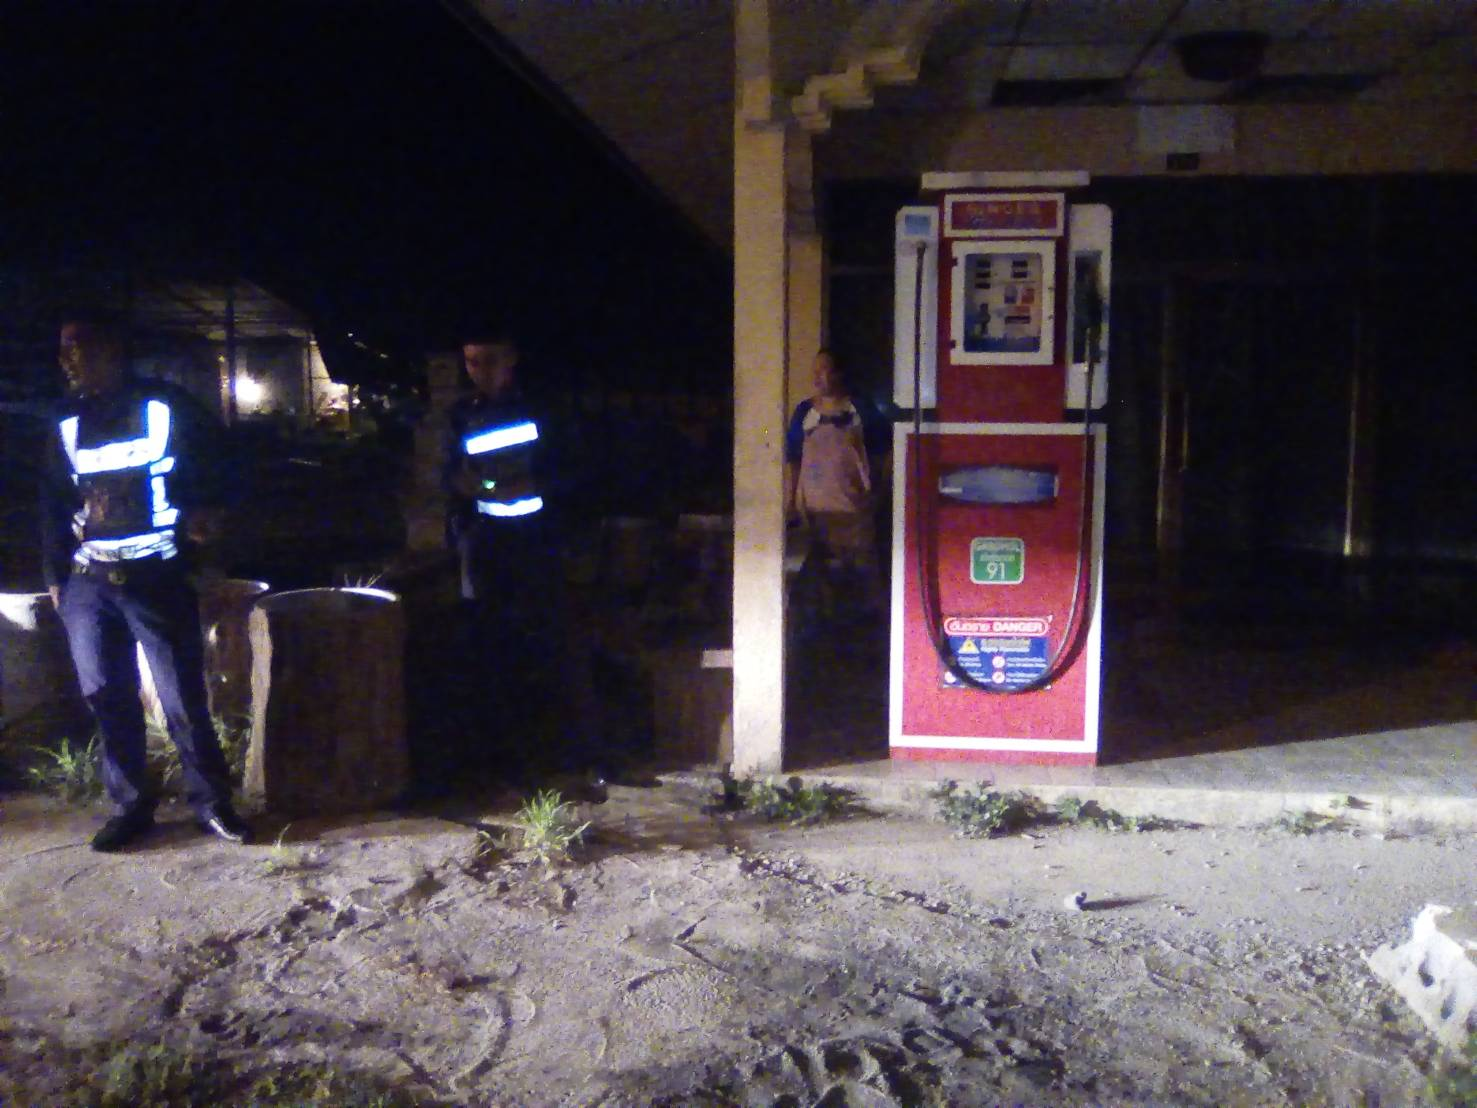 Police hunting for a thief who stole money from a petrol dispenser | The Thaiger